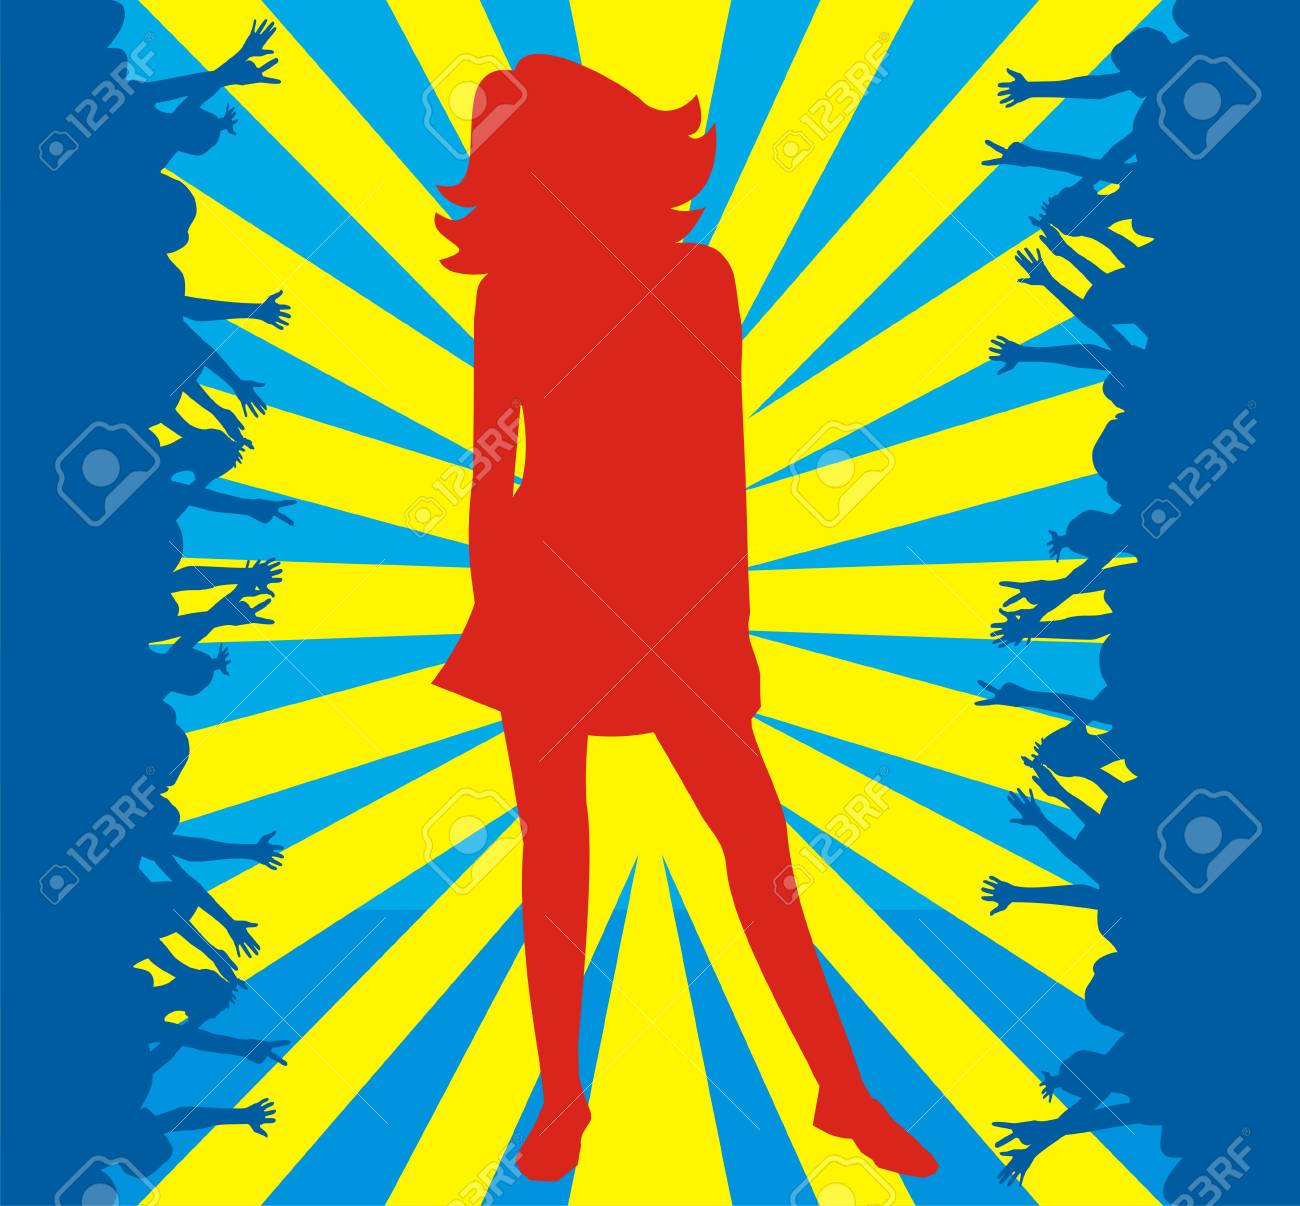 Red silhouette of the girl on a blue background with yellow strips in an environment of dark blue silhouettes of people Stock Vector - 1640759